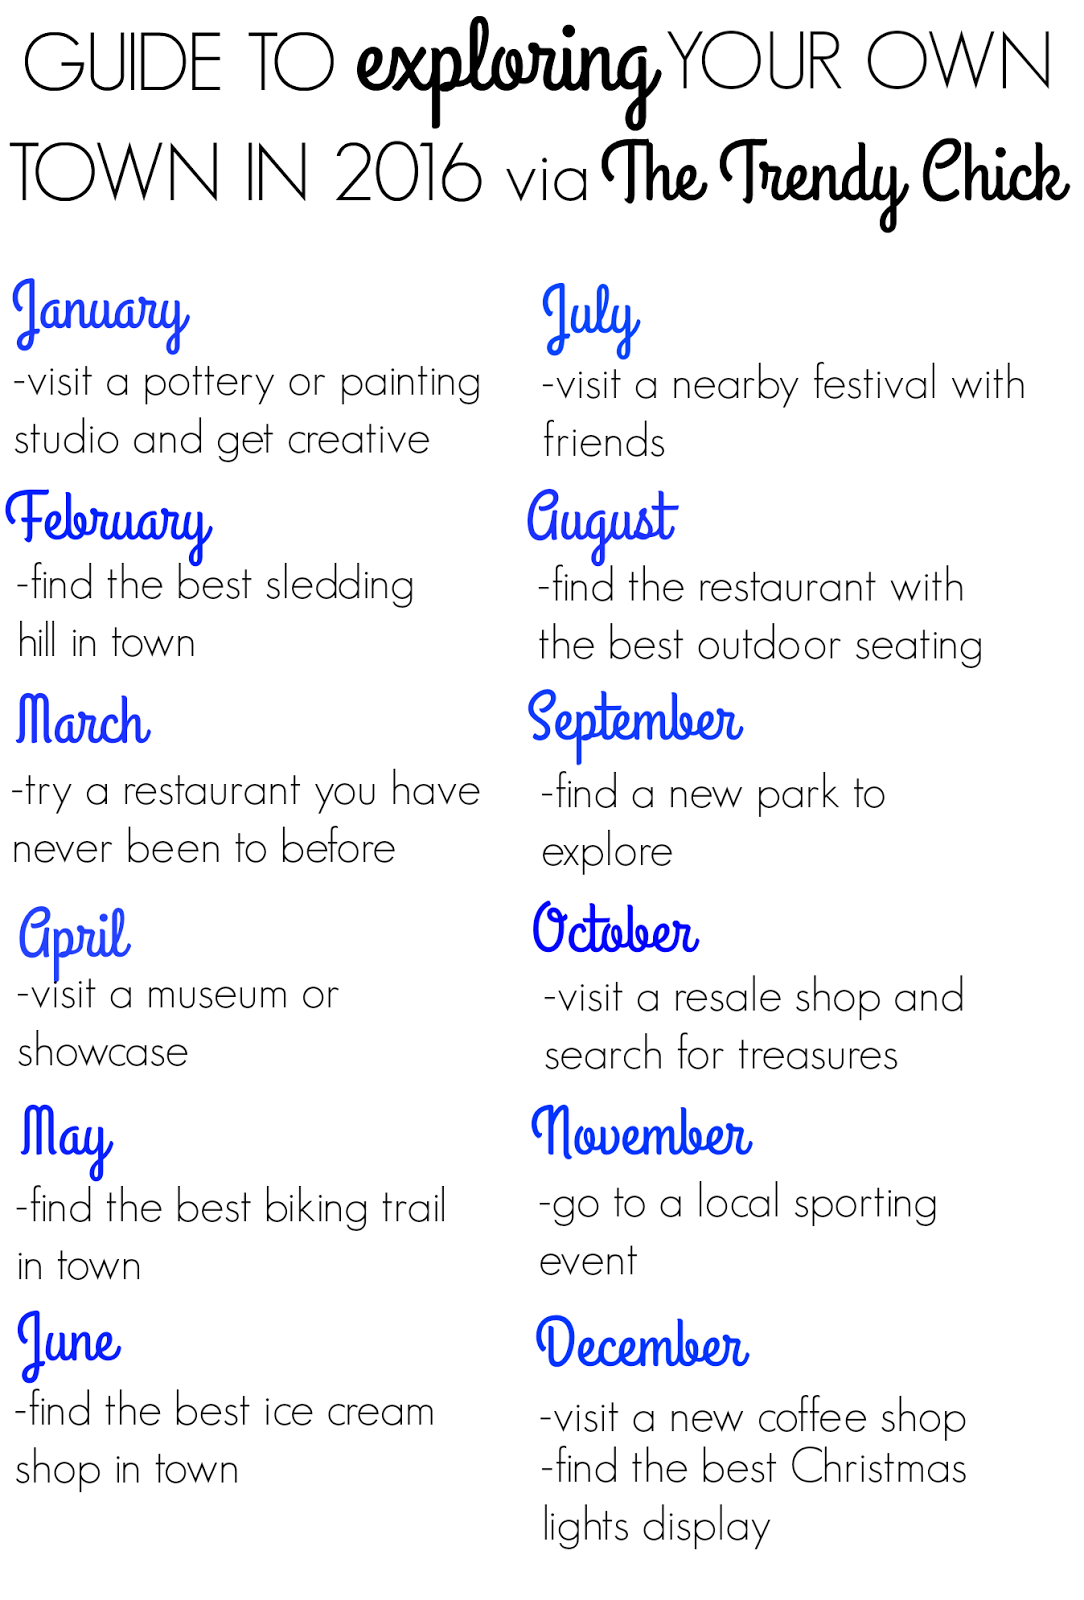 Guide To Exploring Your Town In 2016